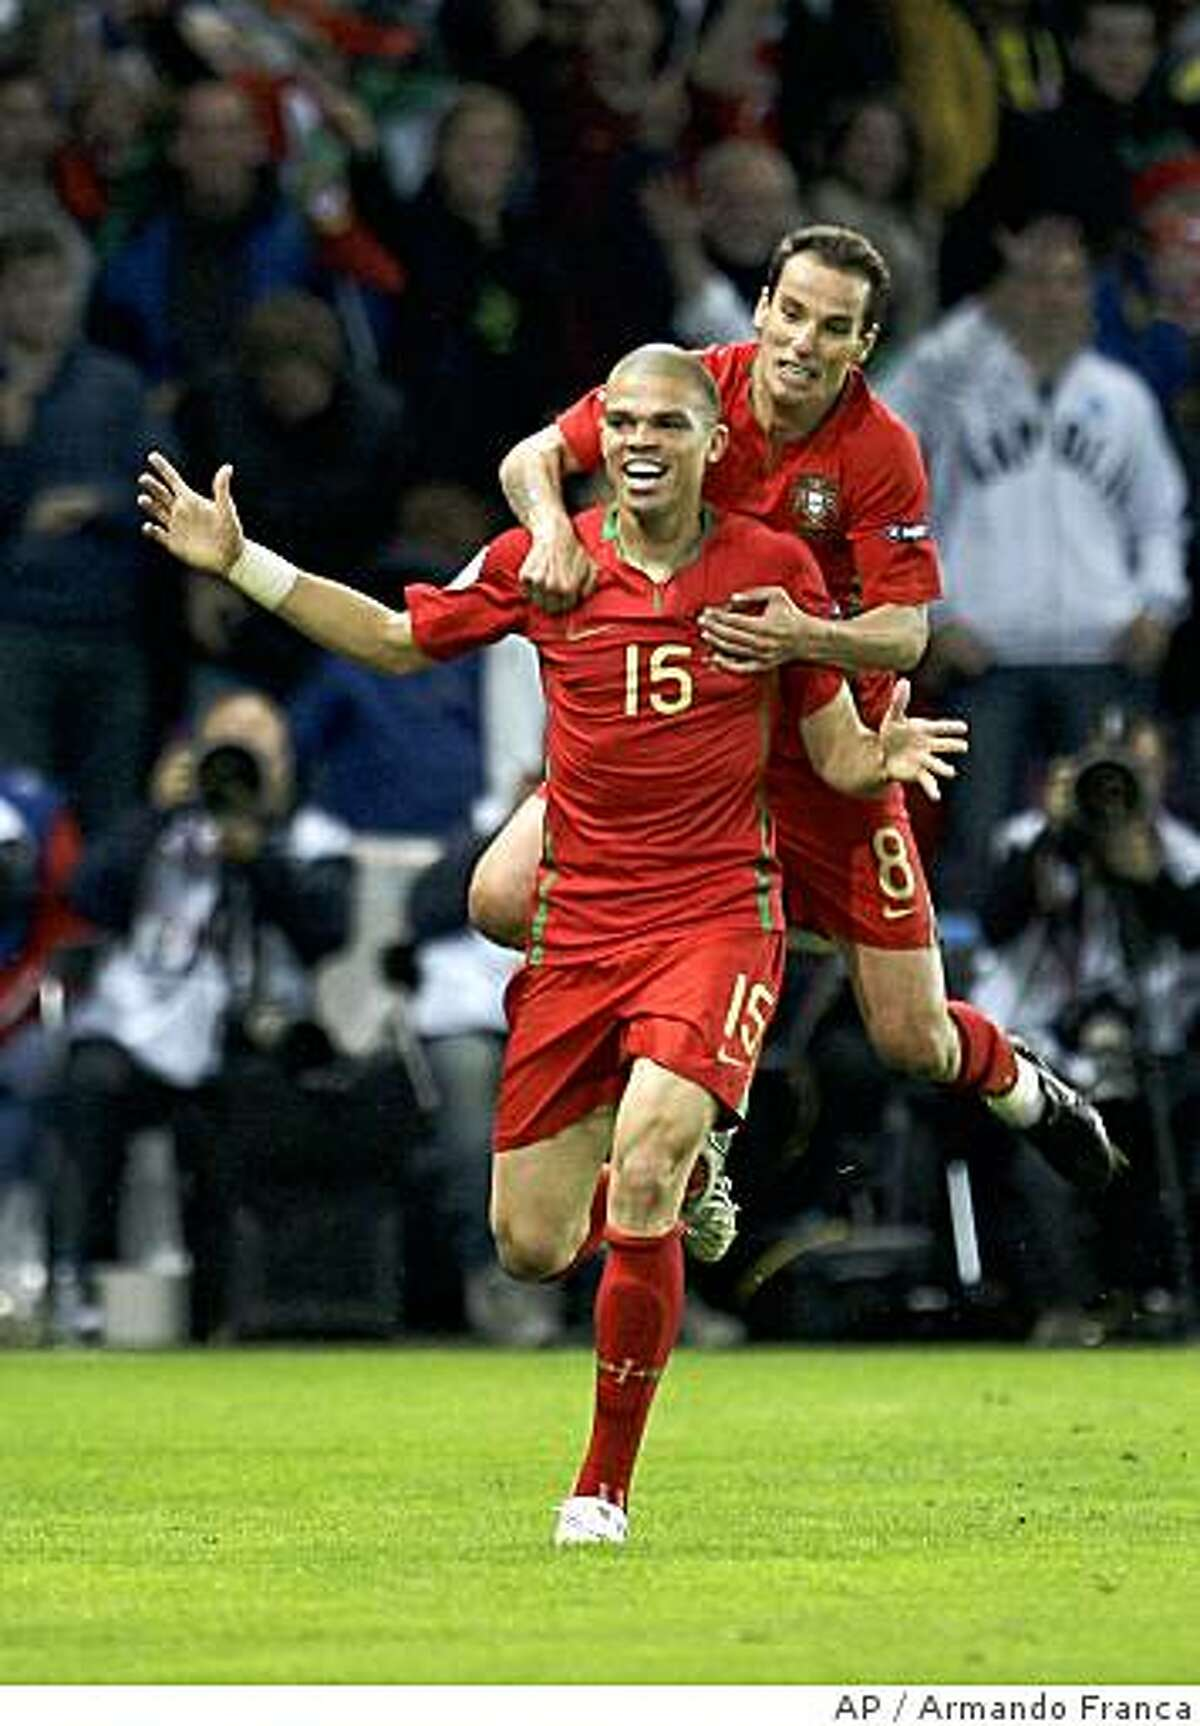 Portugal's Pepe, left, reacts with fellow team member Petit, right, after scoring the opening goal during the group A match between Portugal and Turkey in Geneva, Switzerland, Saturday, June 7, 2008, at the Euro 2008 European Soccer Championships in Austria and Switzerland. (AP Photo/Armando Franca)